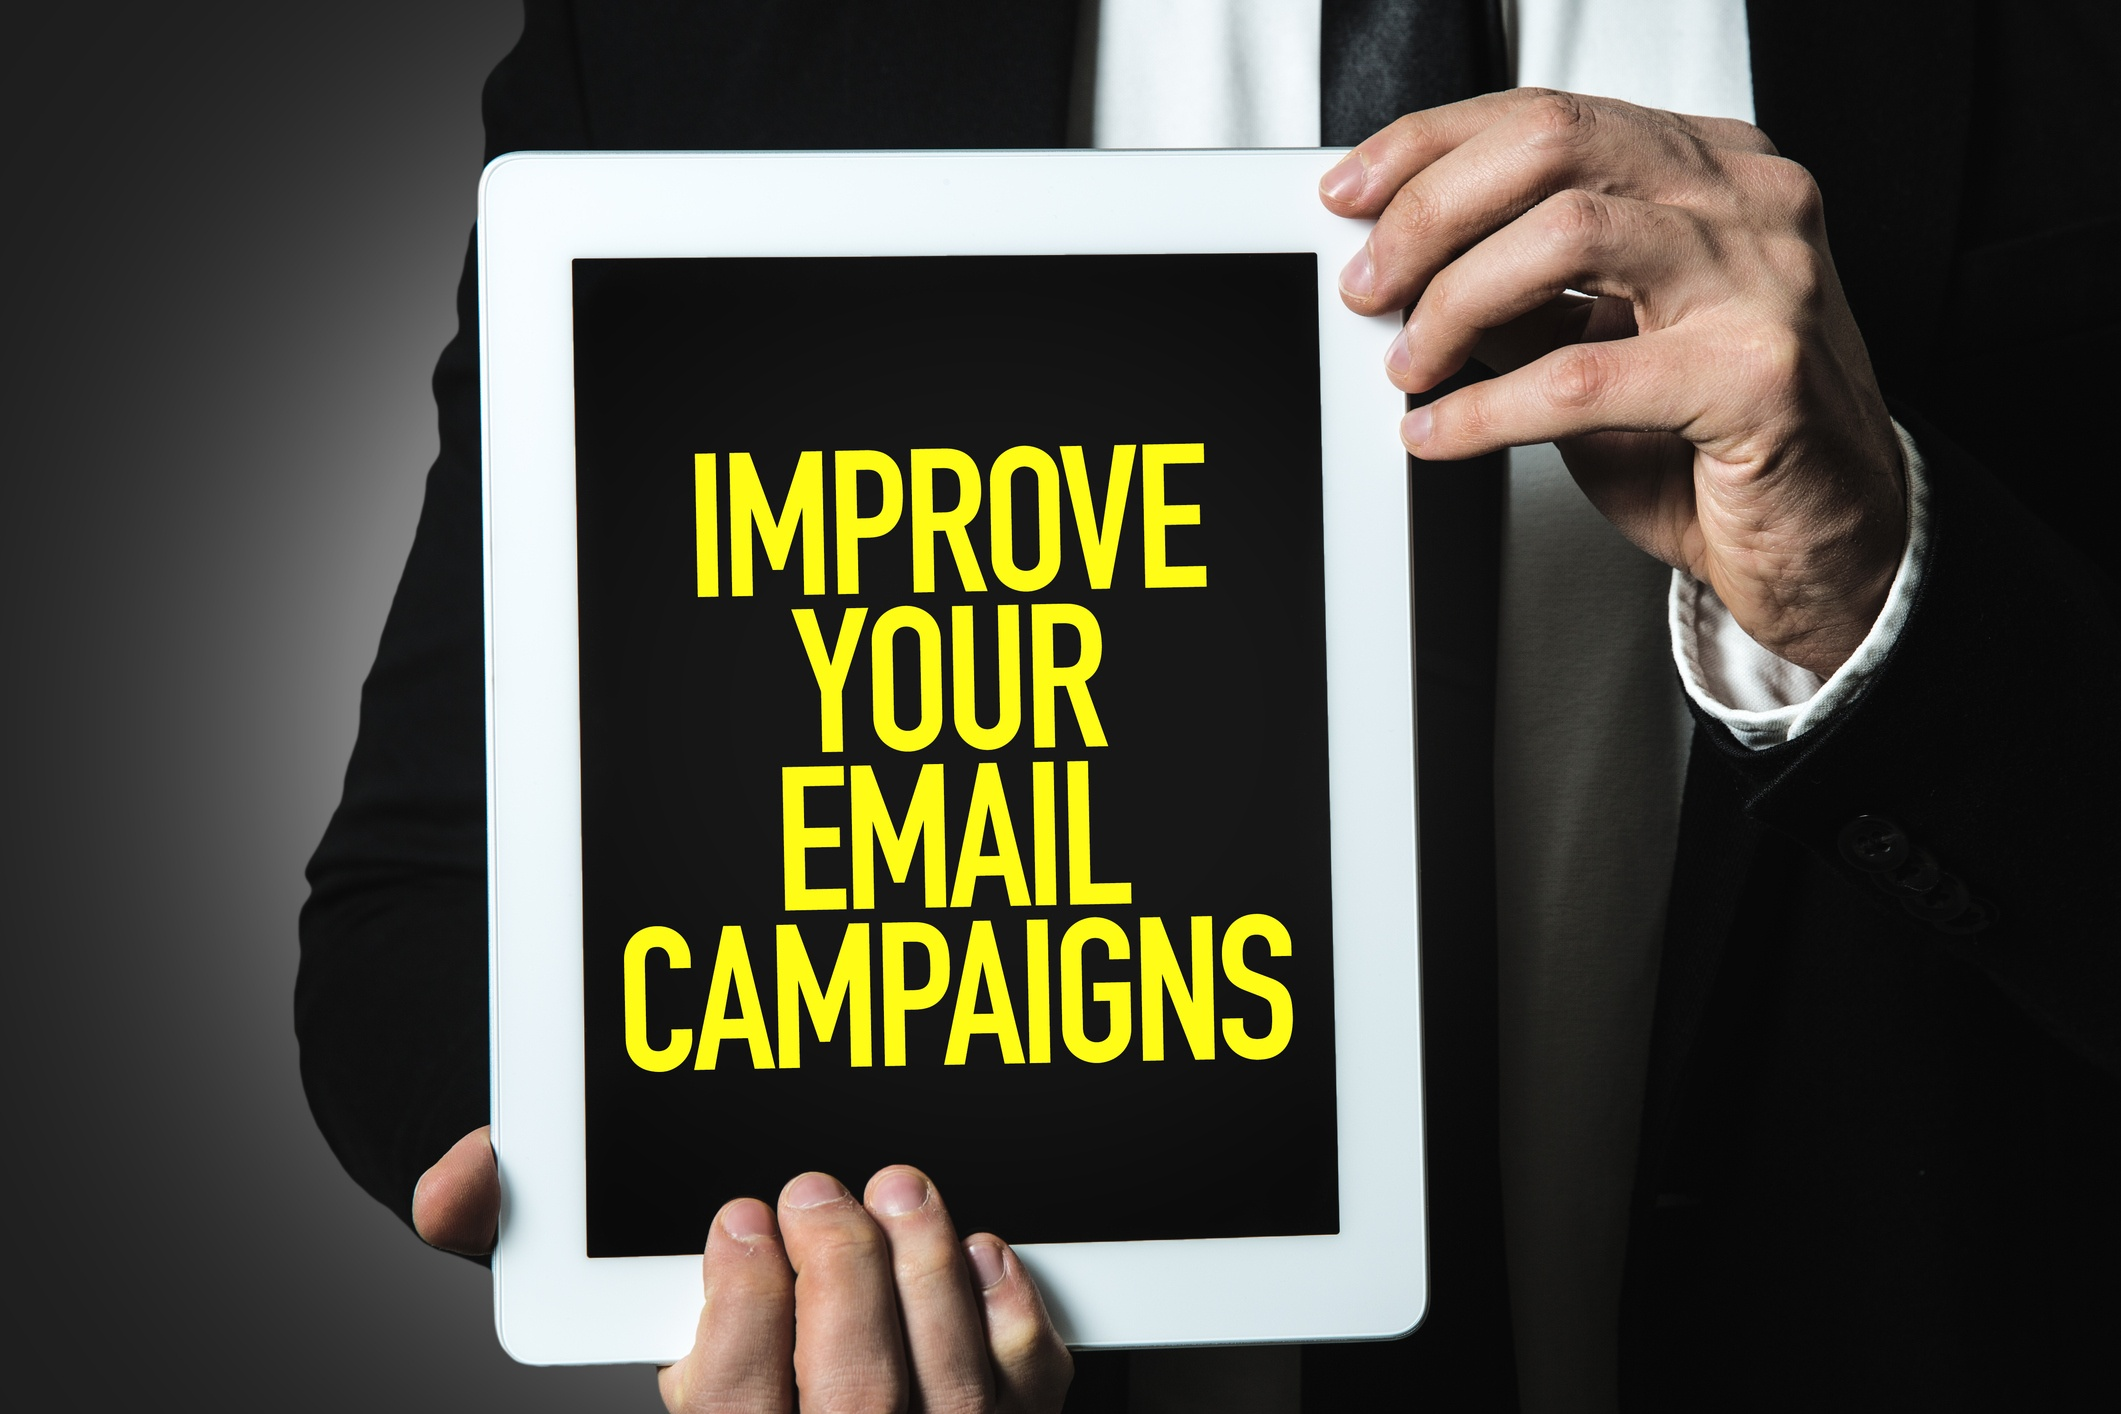 10-best-restaurant-email-marketing-tips-that-convince-and-convert.jpg